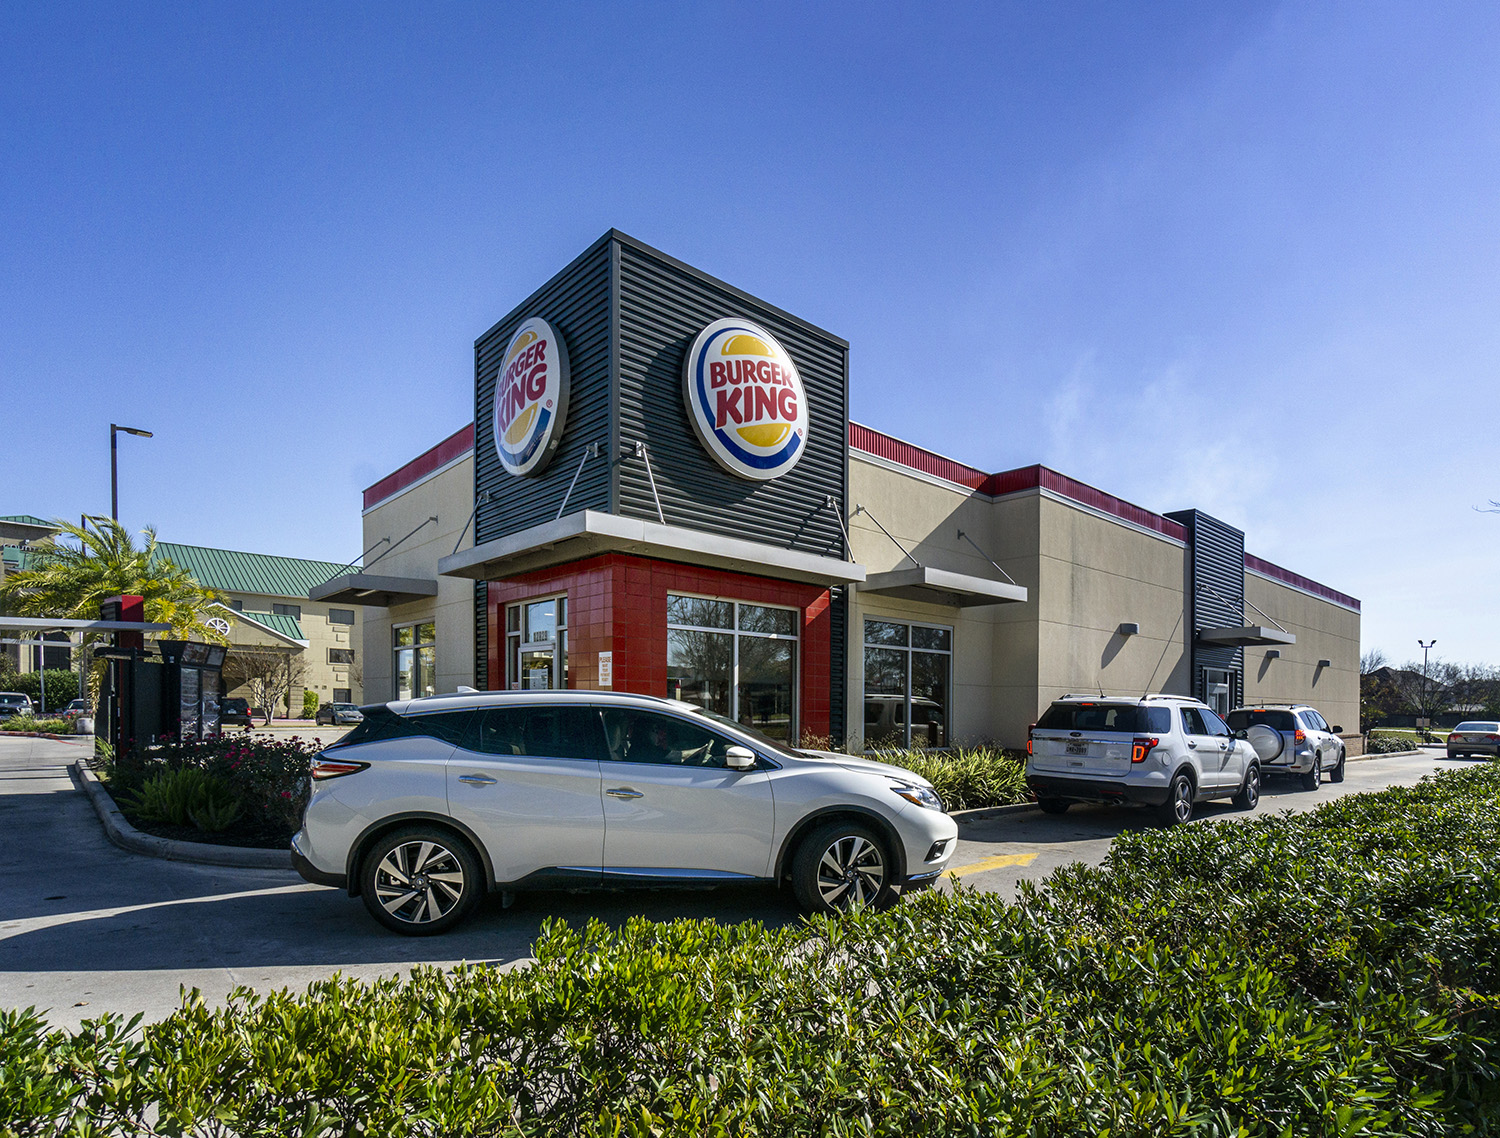 Hanley Investment Group Arranges Sale of New Single-Tenant Burger King Prototype with Double-Drive Thru in Houston